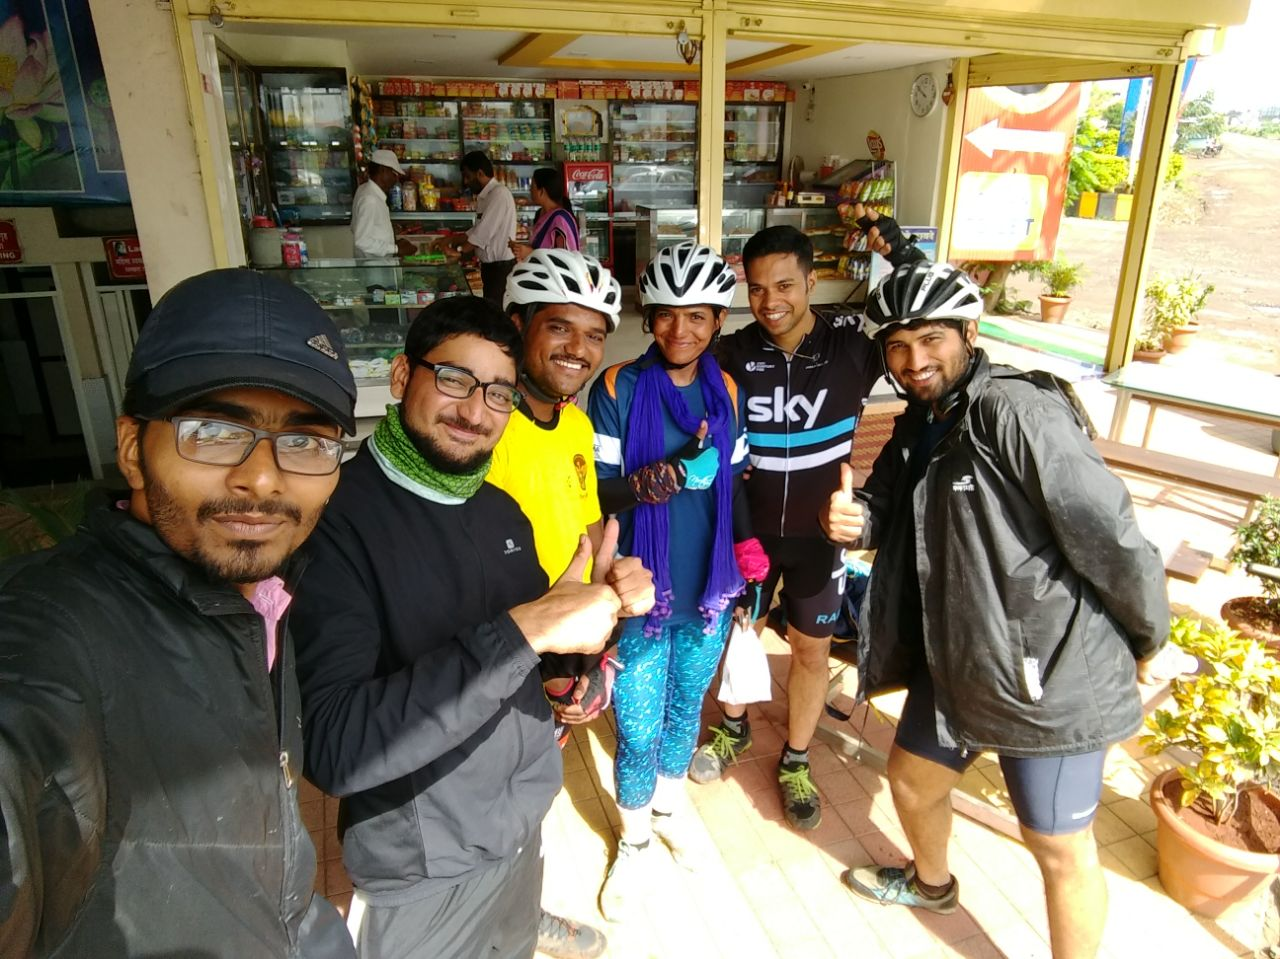 Sunday morning ride - cyclist group